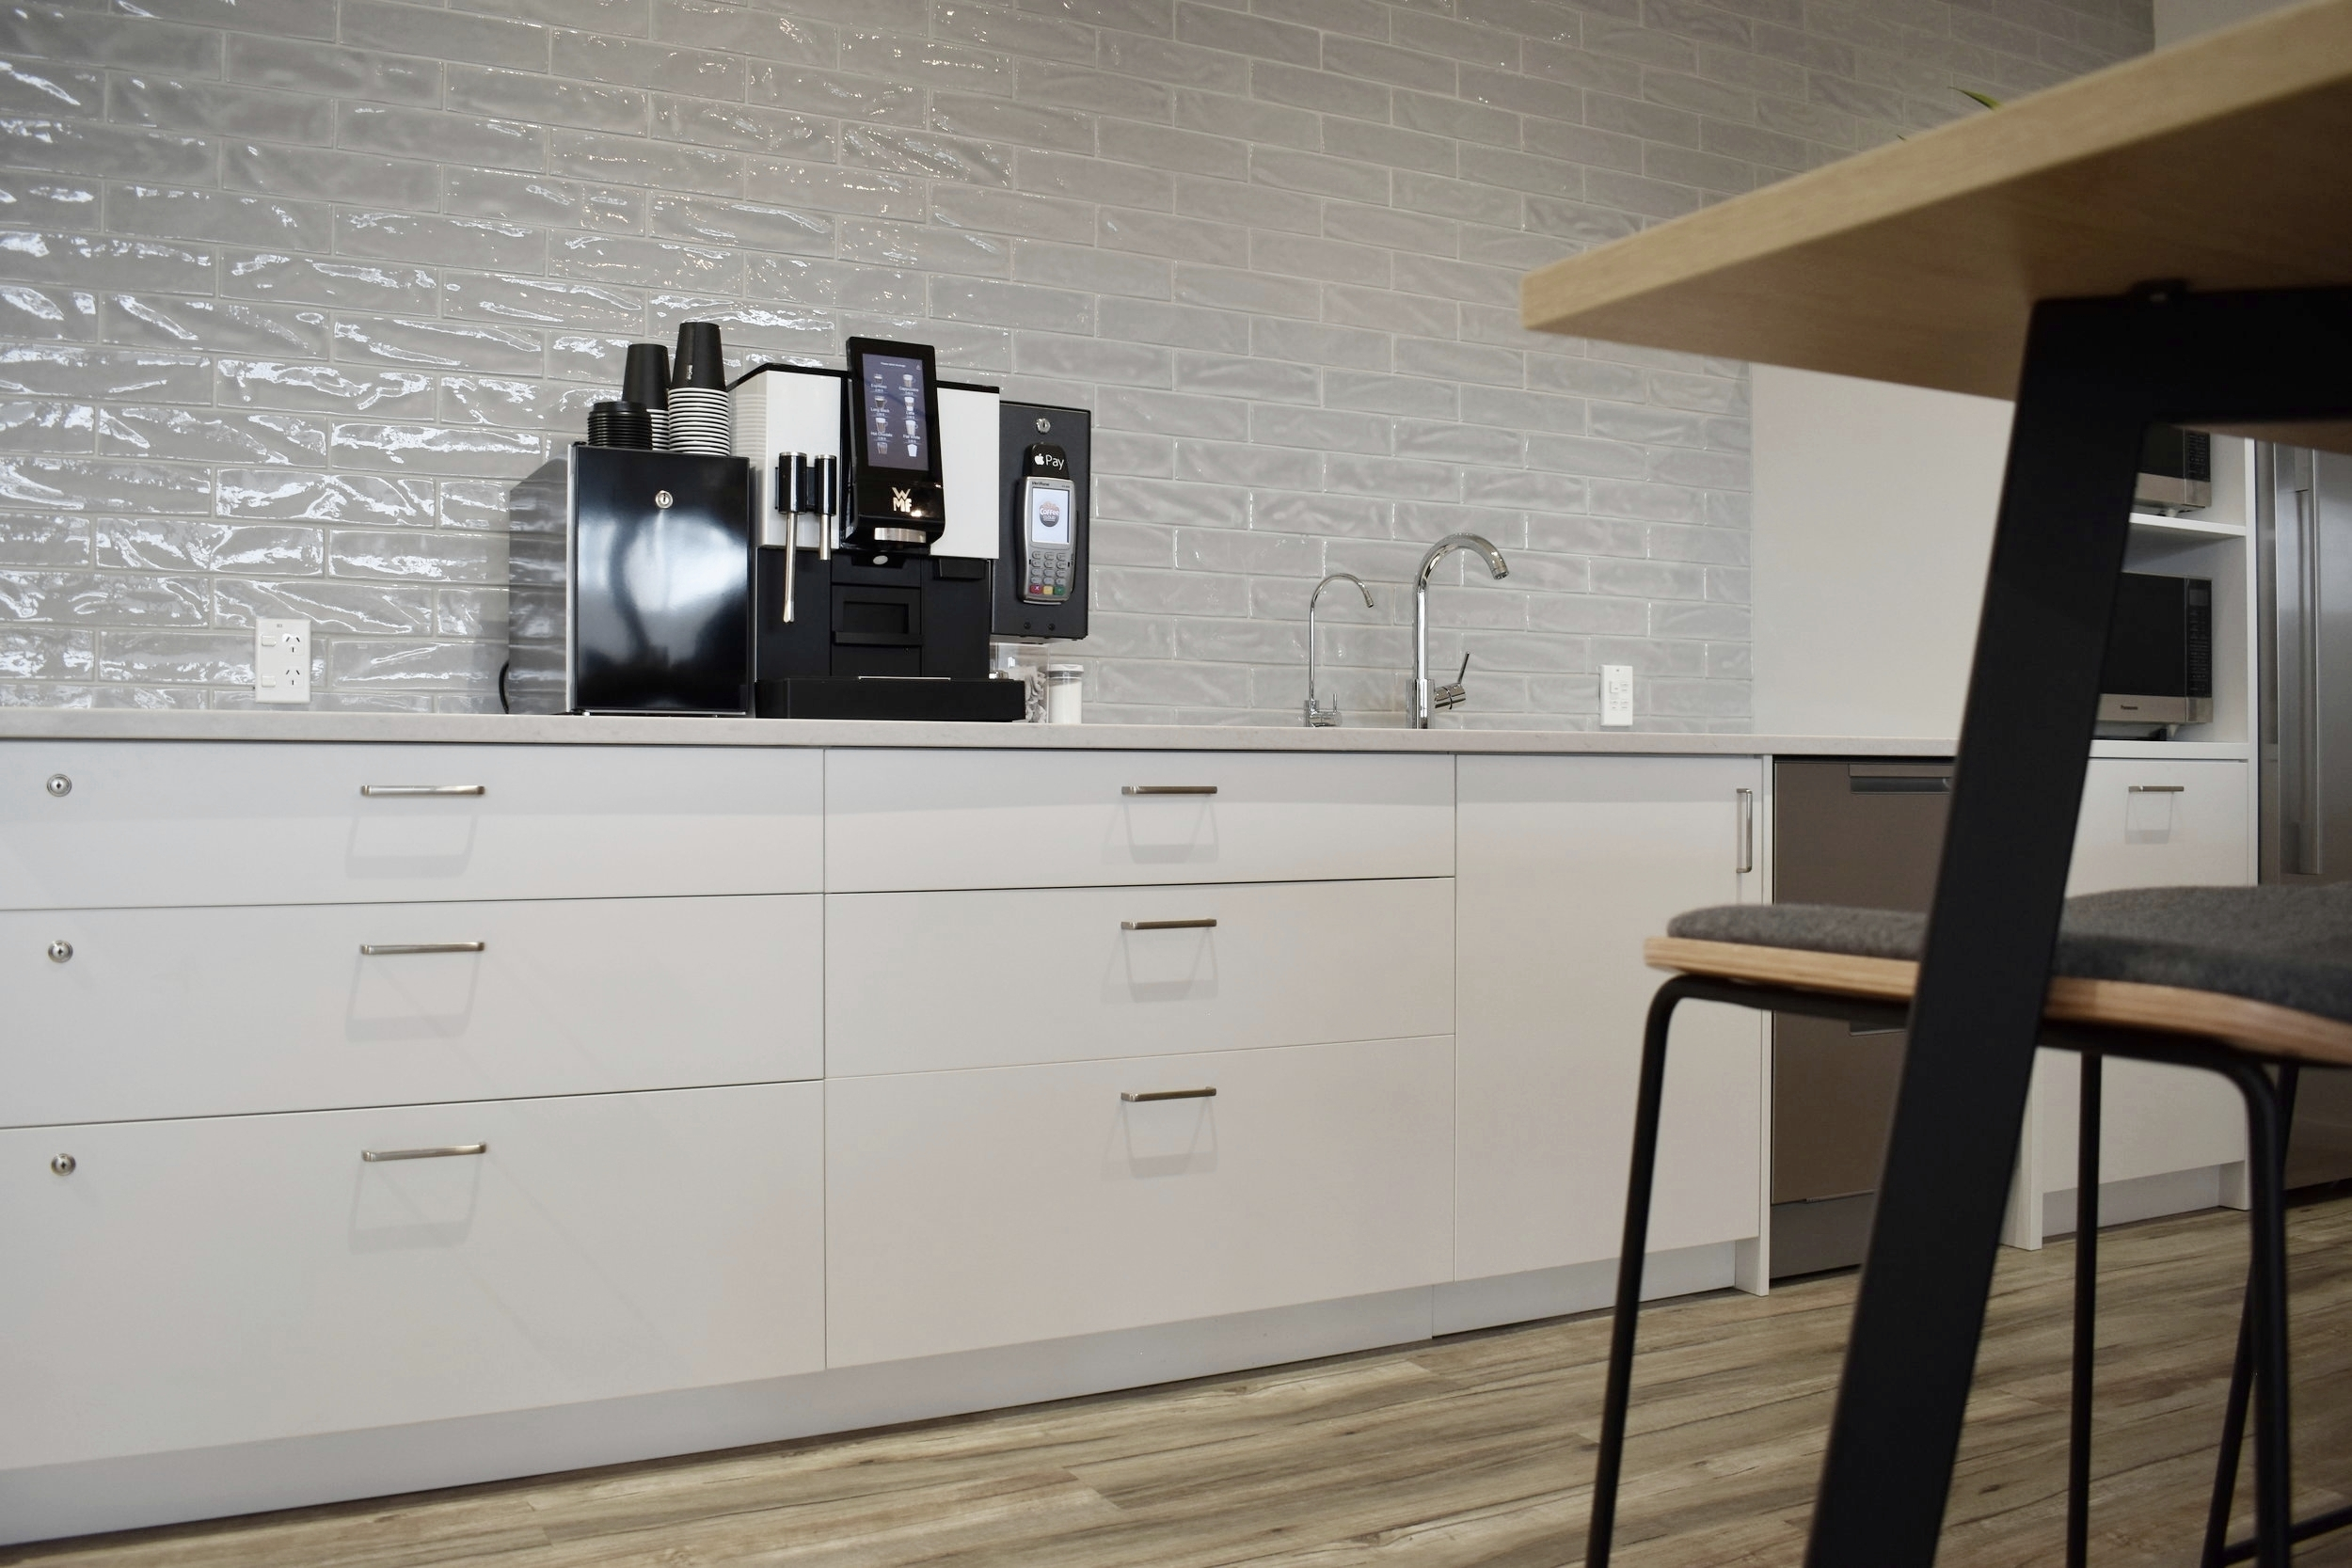 The tile splash back provides texture and movement, a lovely alternative to a piece of art work in a kitchen space.